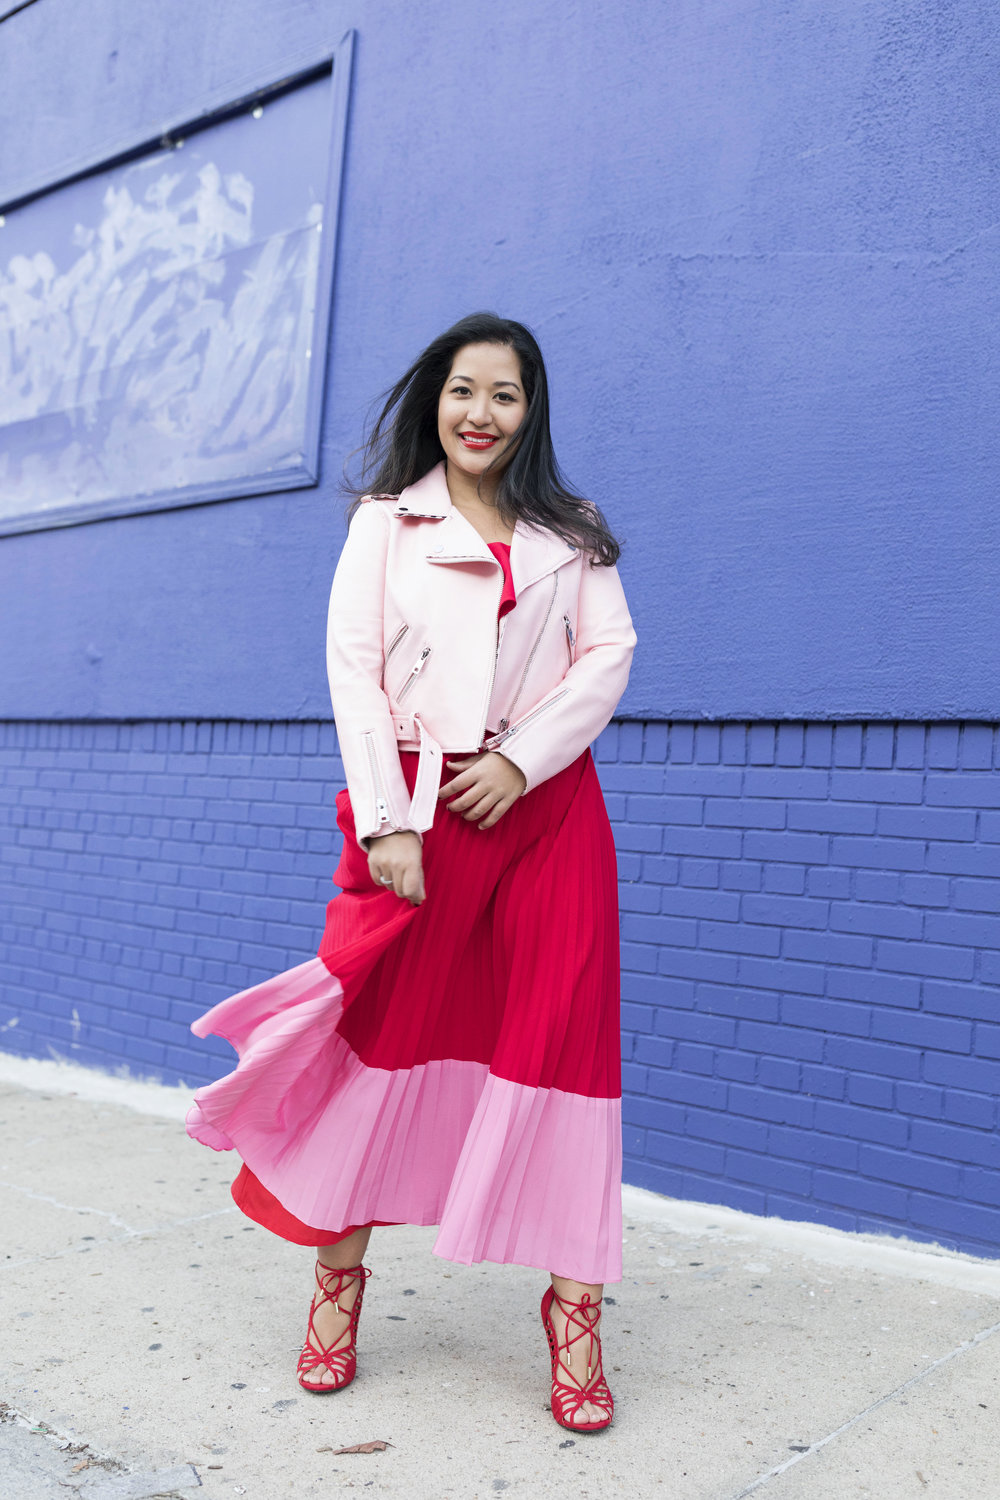 Krity S x Two Tone Red Pink Aidan Dress x Valentine's Day4.jpg